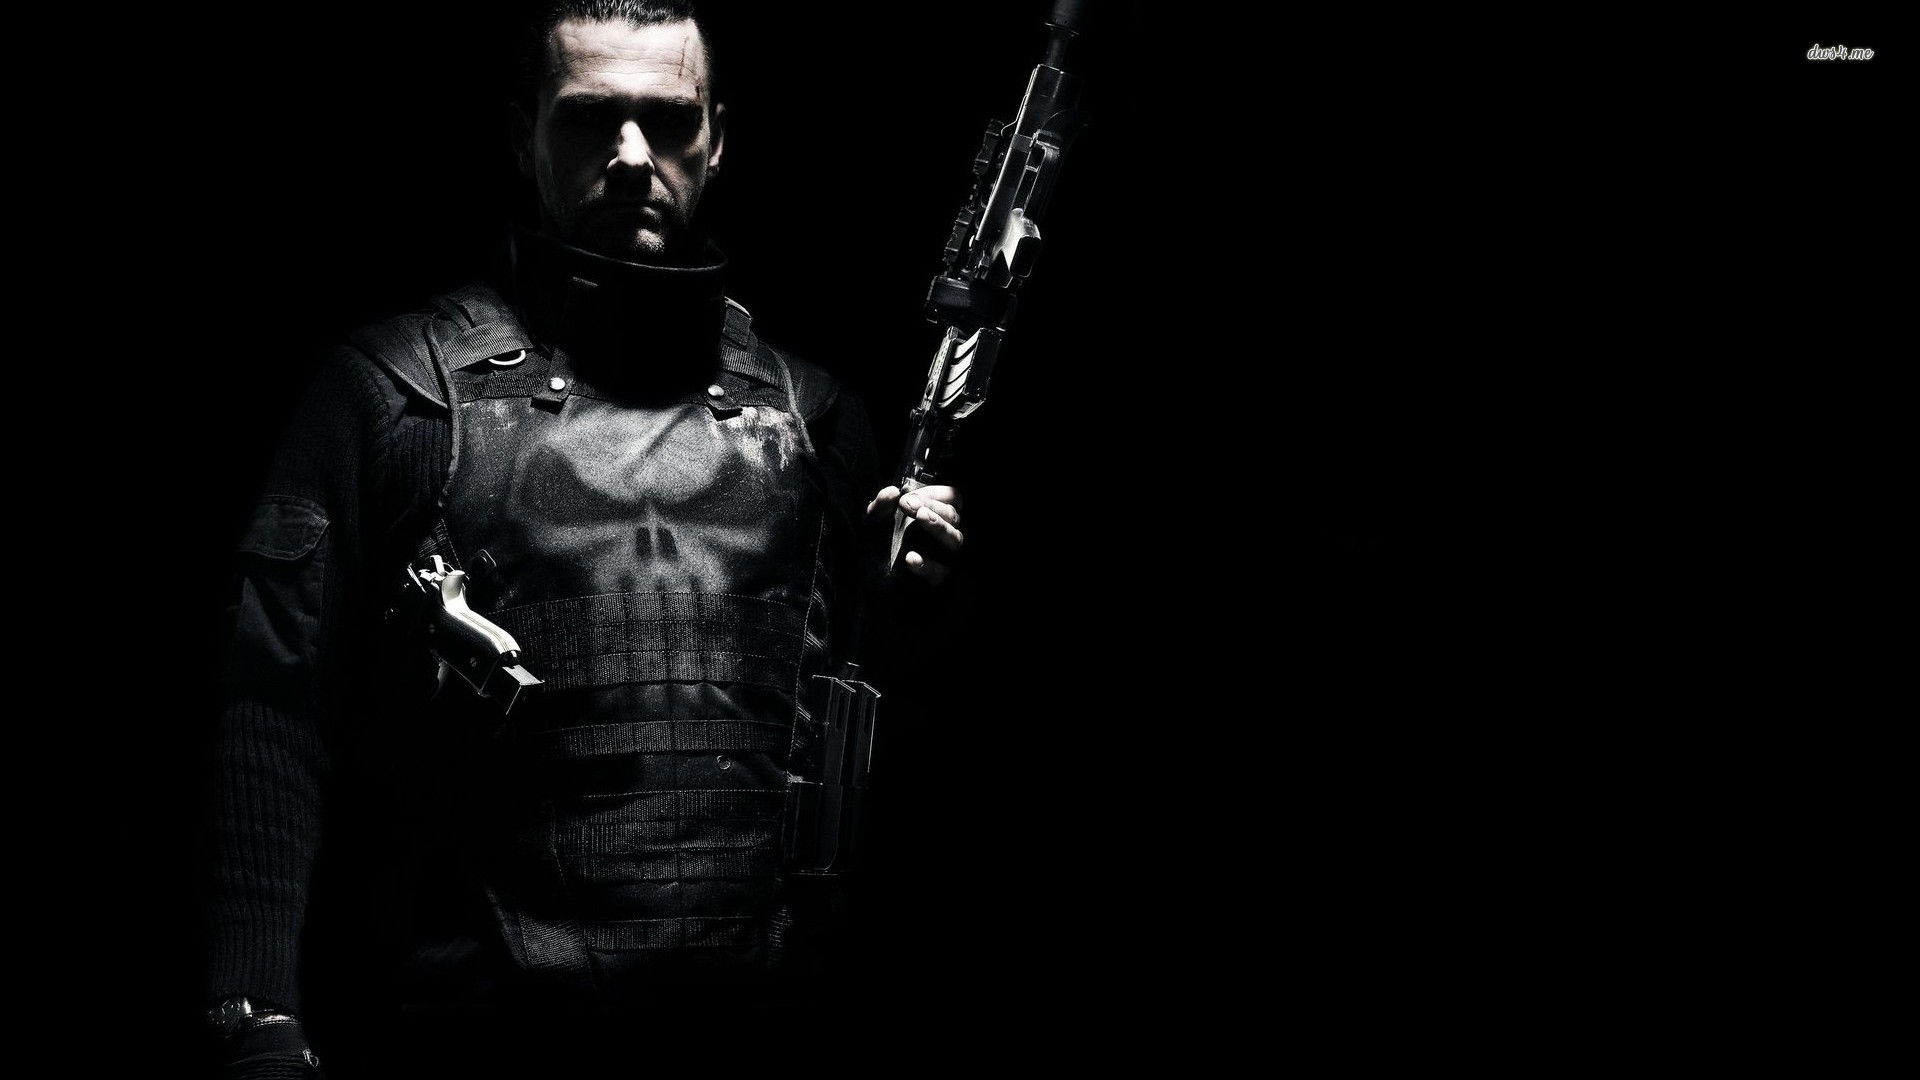 Punisher Wallpaper PC Attachment 16390 - HD Wallpapers Site